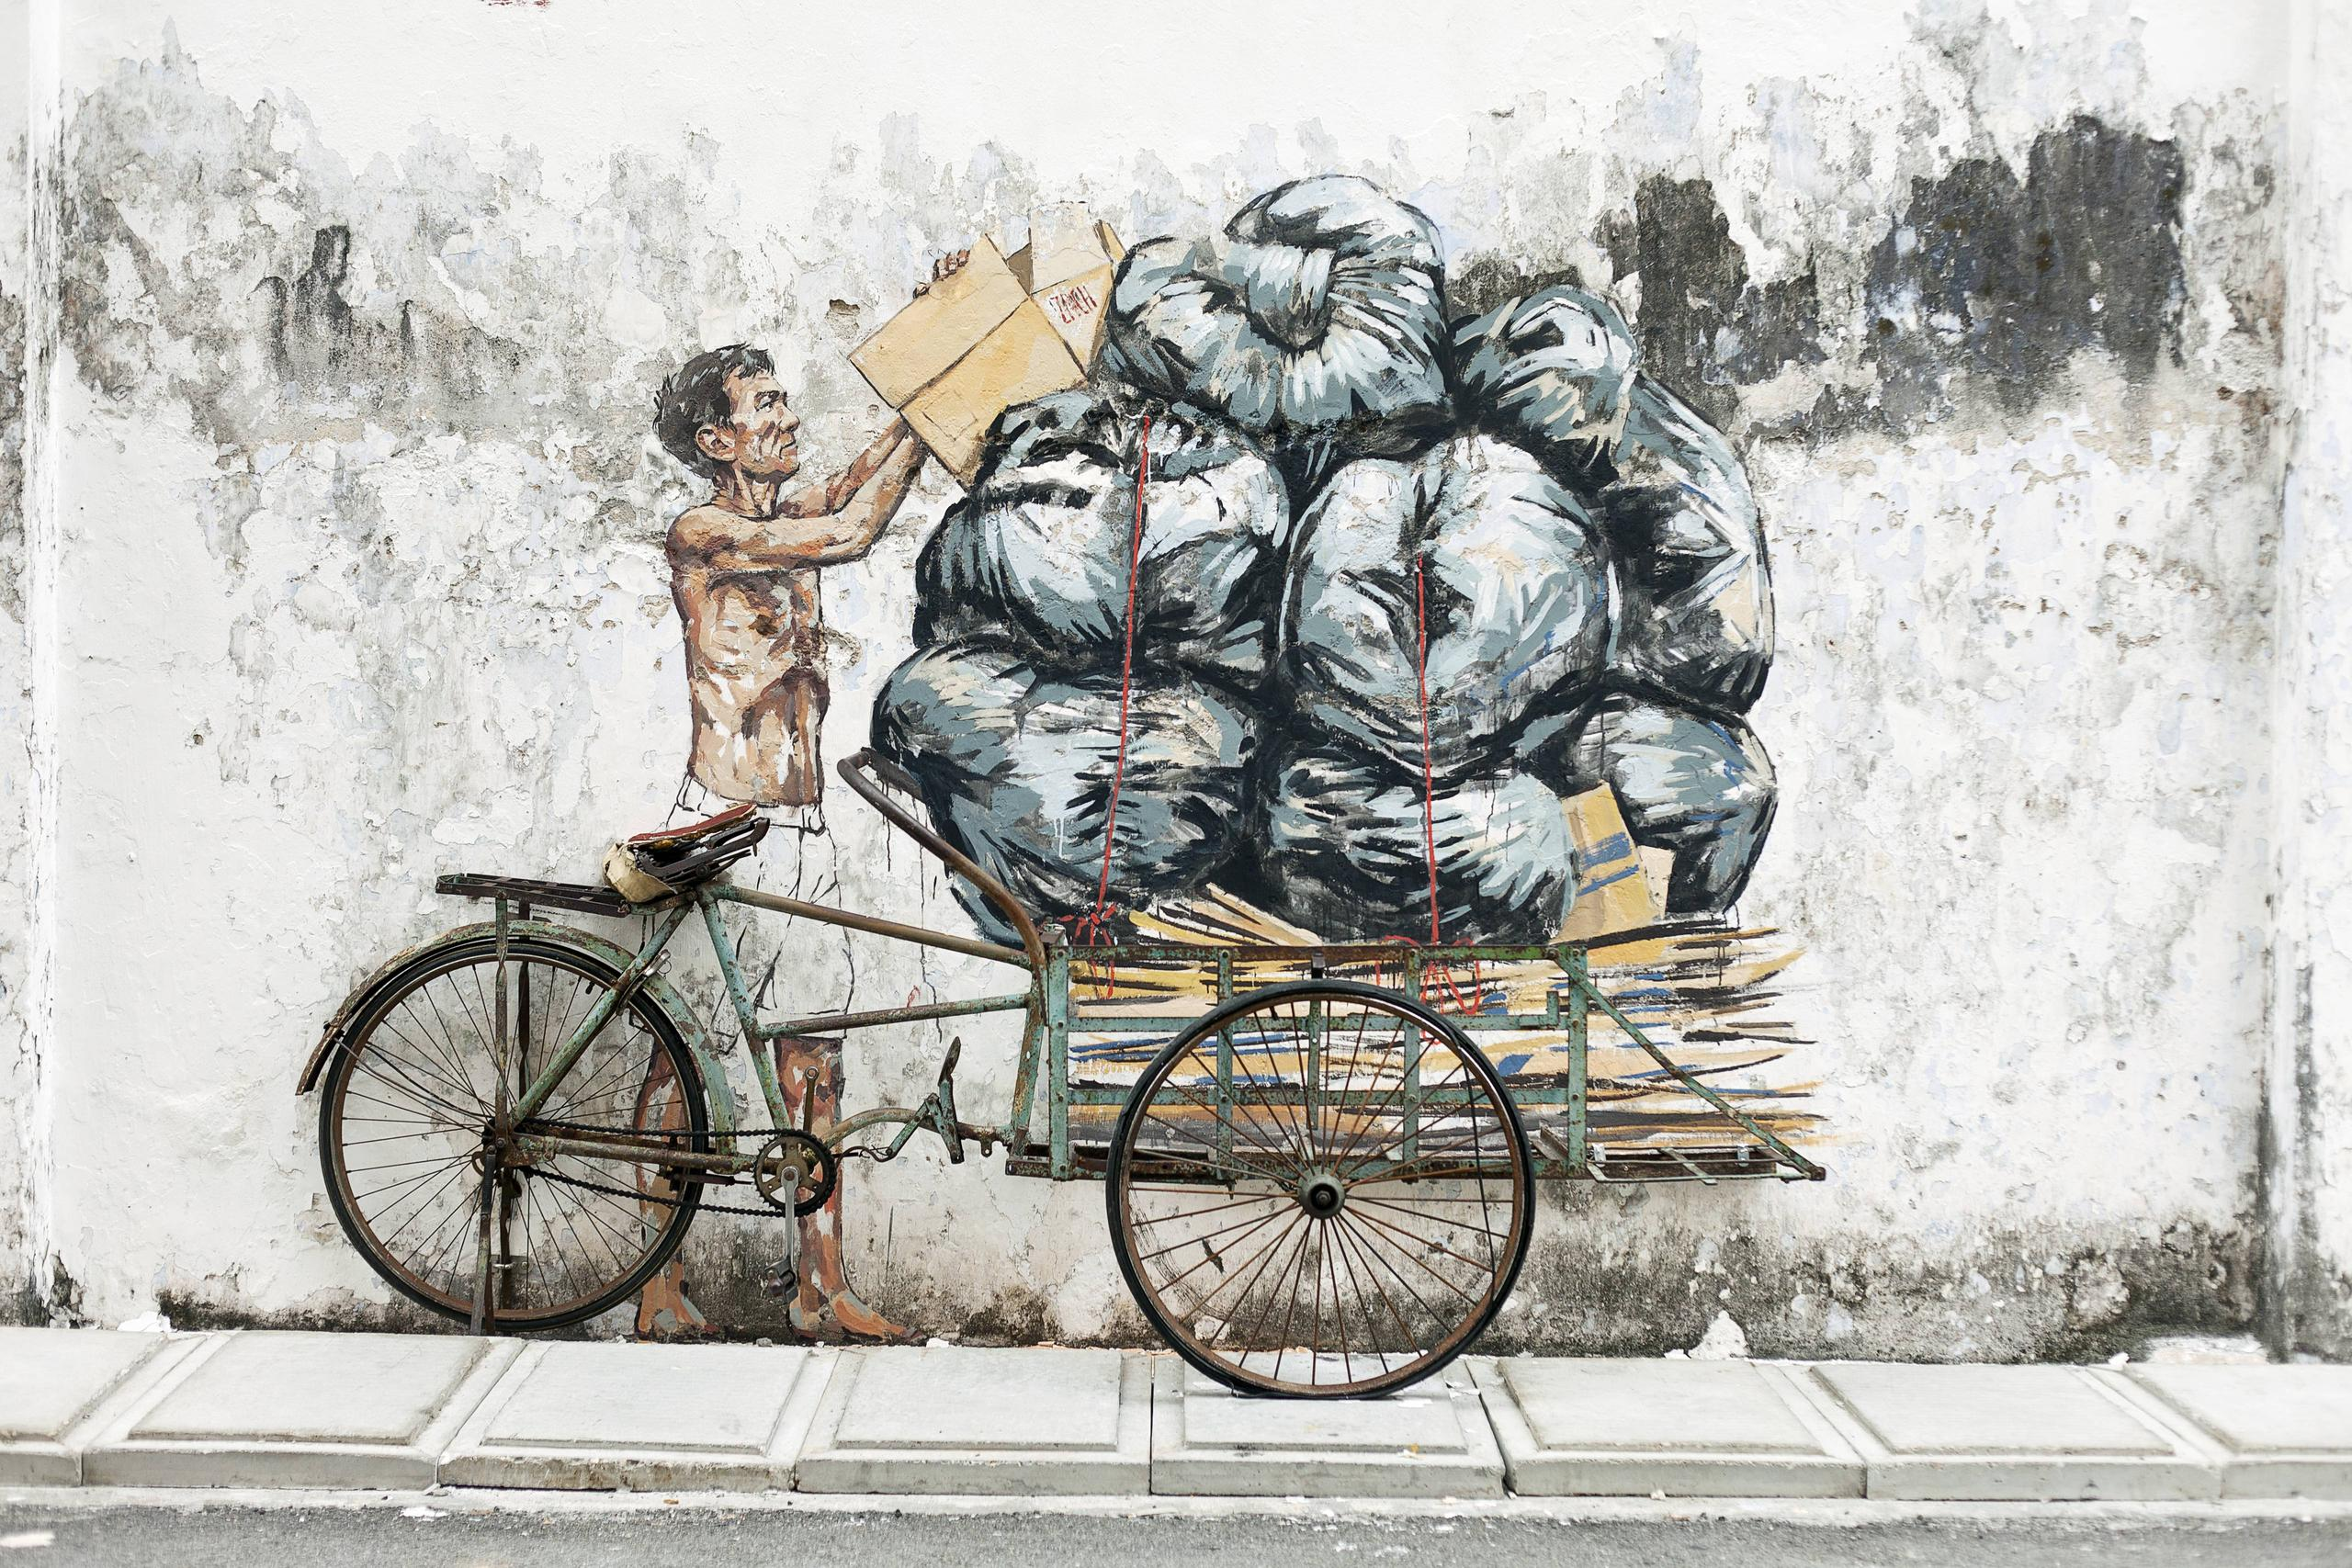 photos video ernest zacharevic on a mission to paint For7 Mural Ipoh